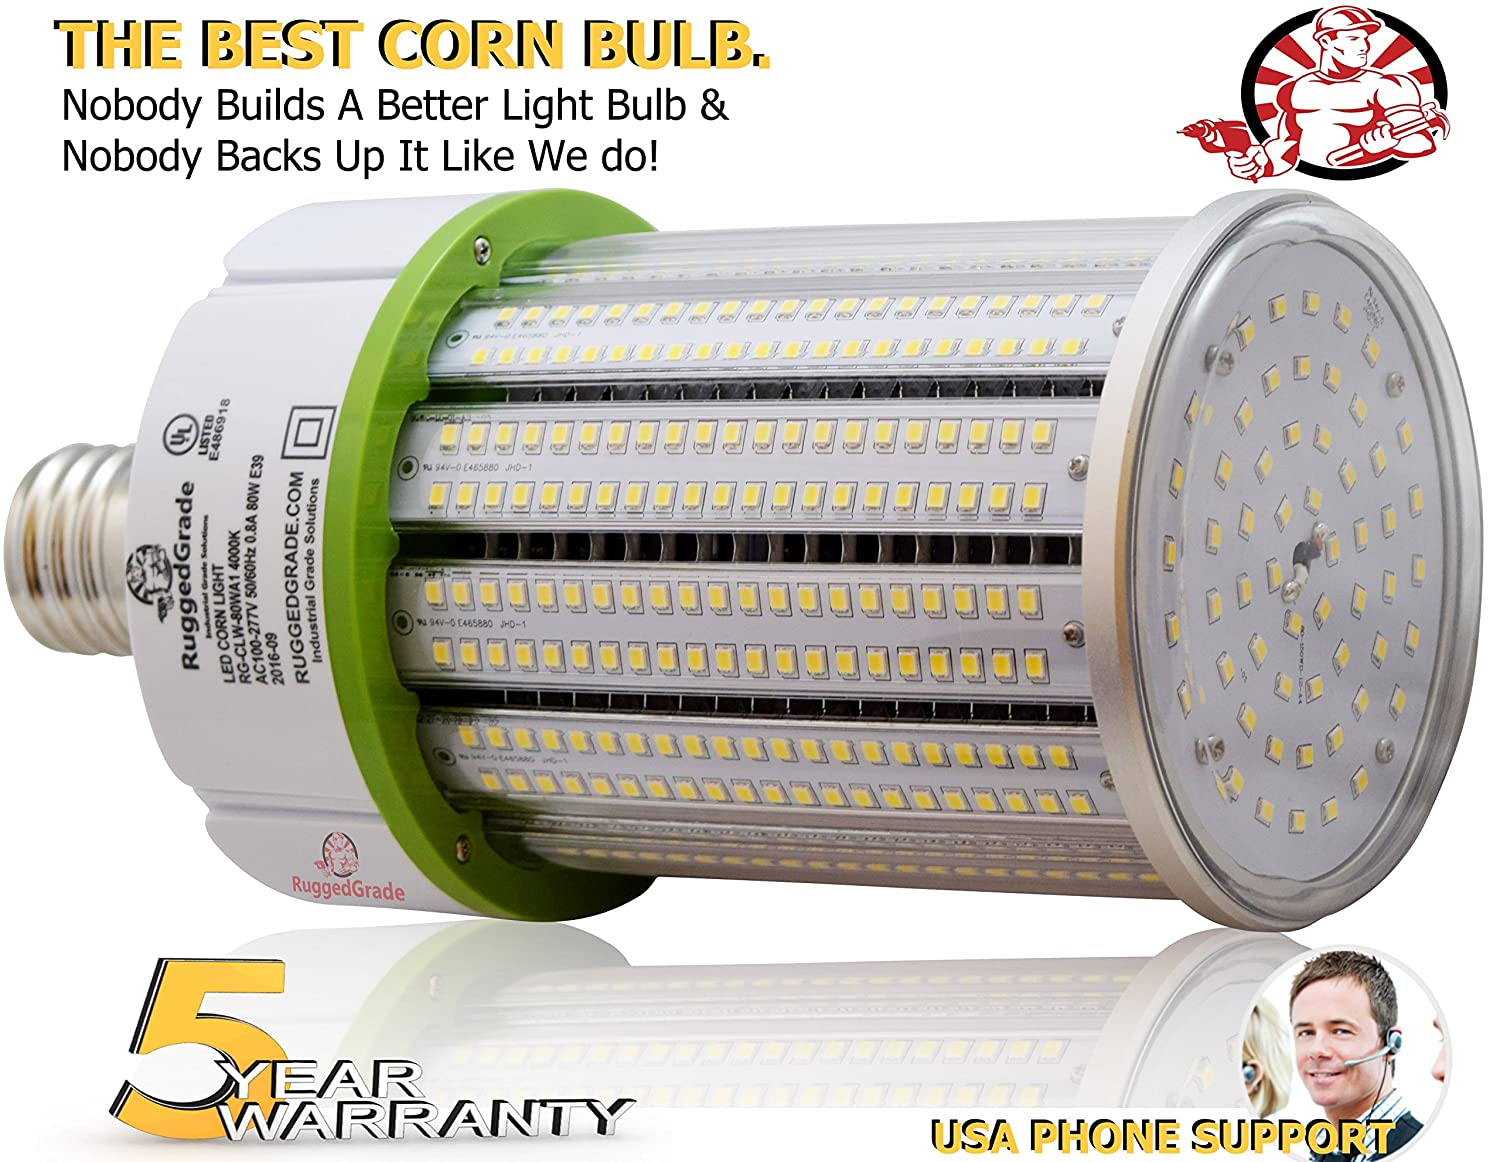 100 Watt E39 LED Bulb 14,422 Lumens 4000K -Replacement for Fixtures HID//HPS//Metal Halide or CFL 360 Degree Lighting High Efficiency 125 Lumen//watt LED Corn Light Bulb